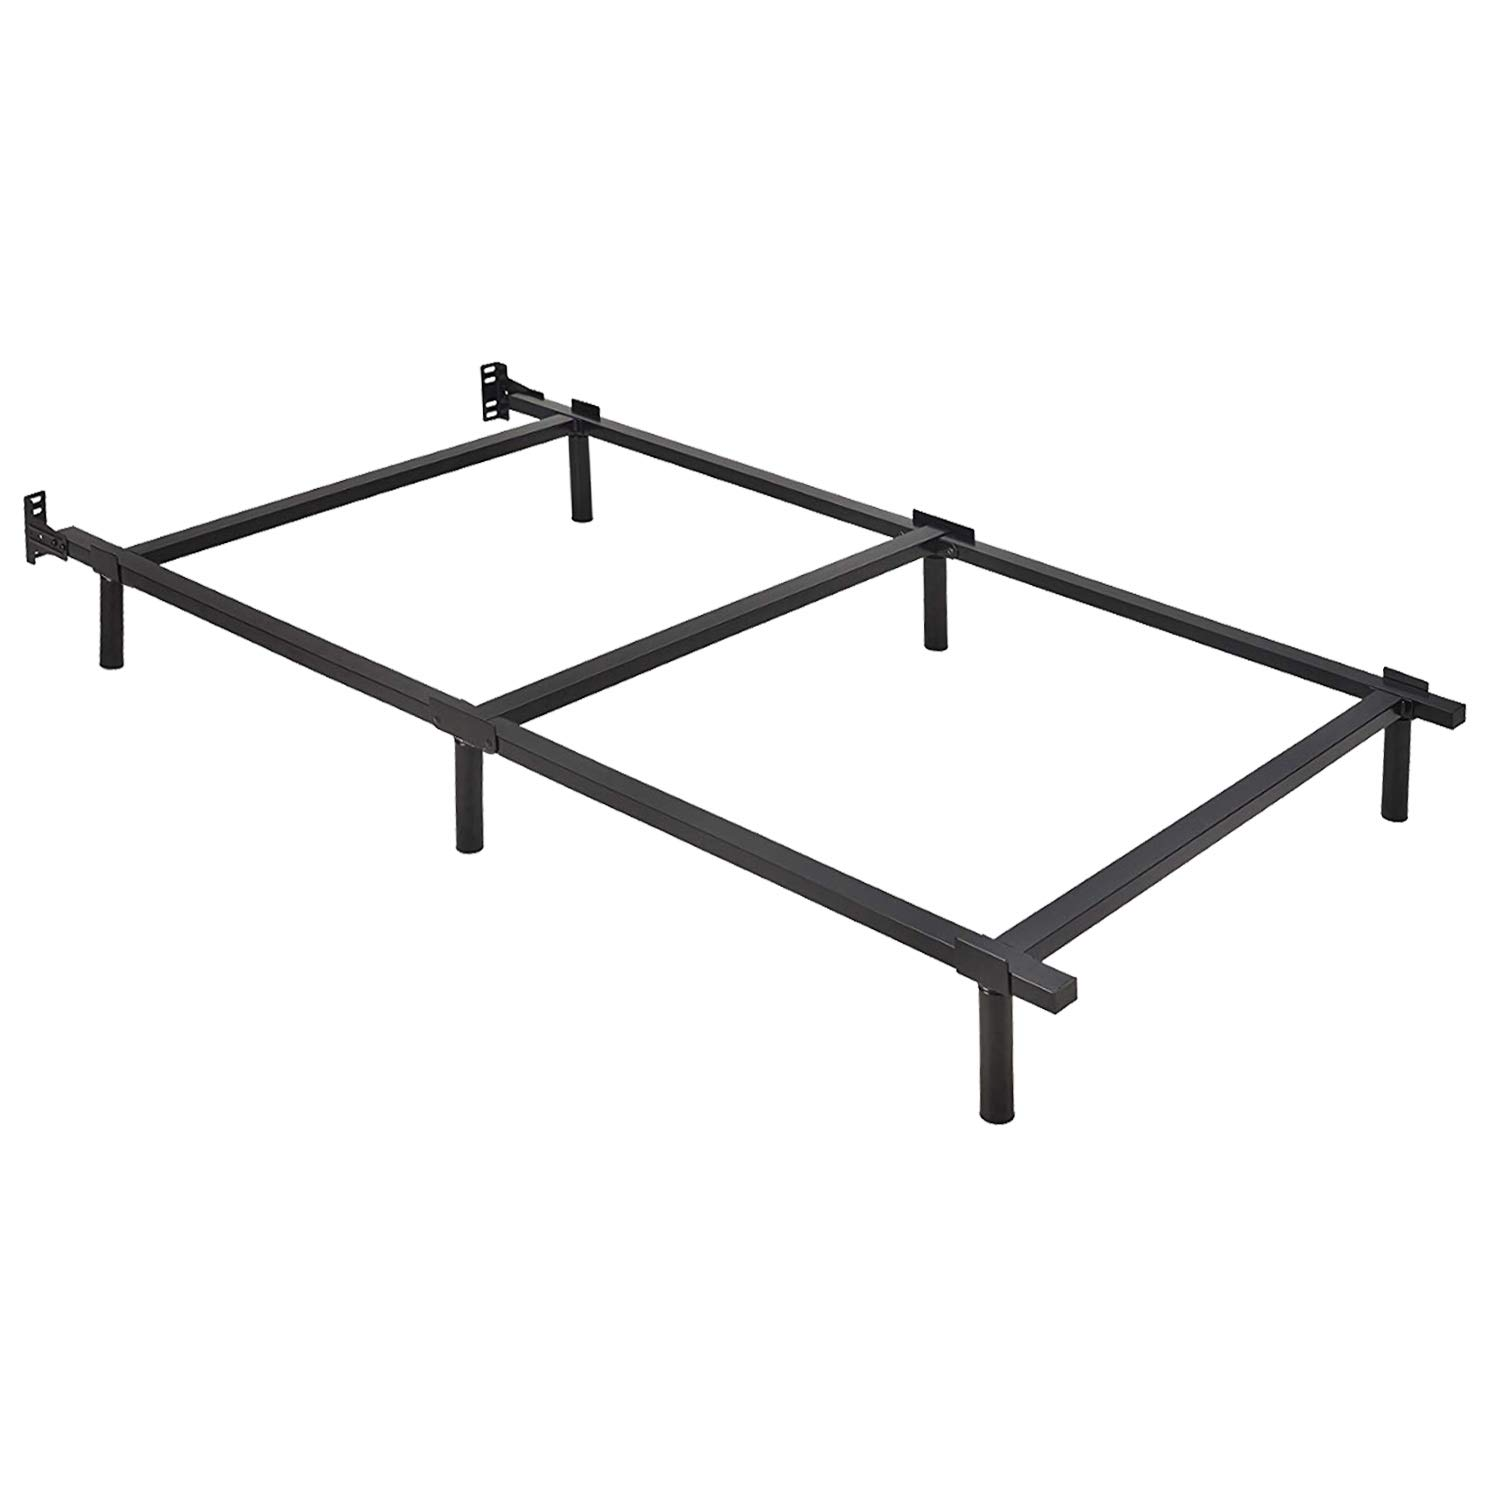 ZIYOO 7 inch Adjustable Metal Bed Frame Base for Box Spring, Full/Queen/King/Cal King